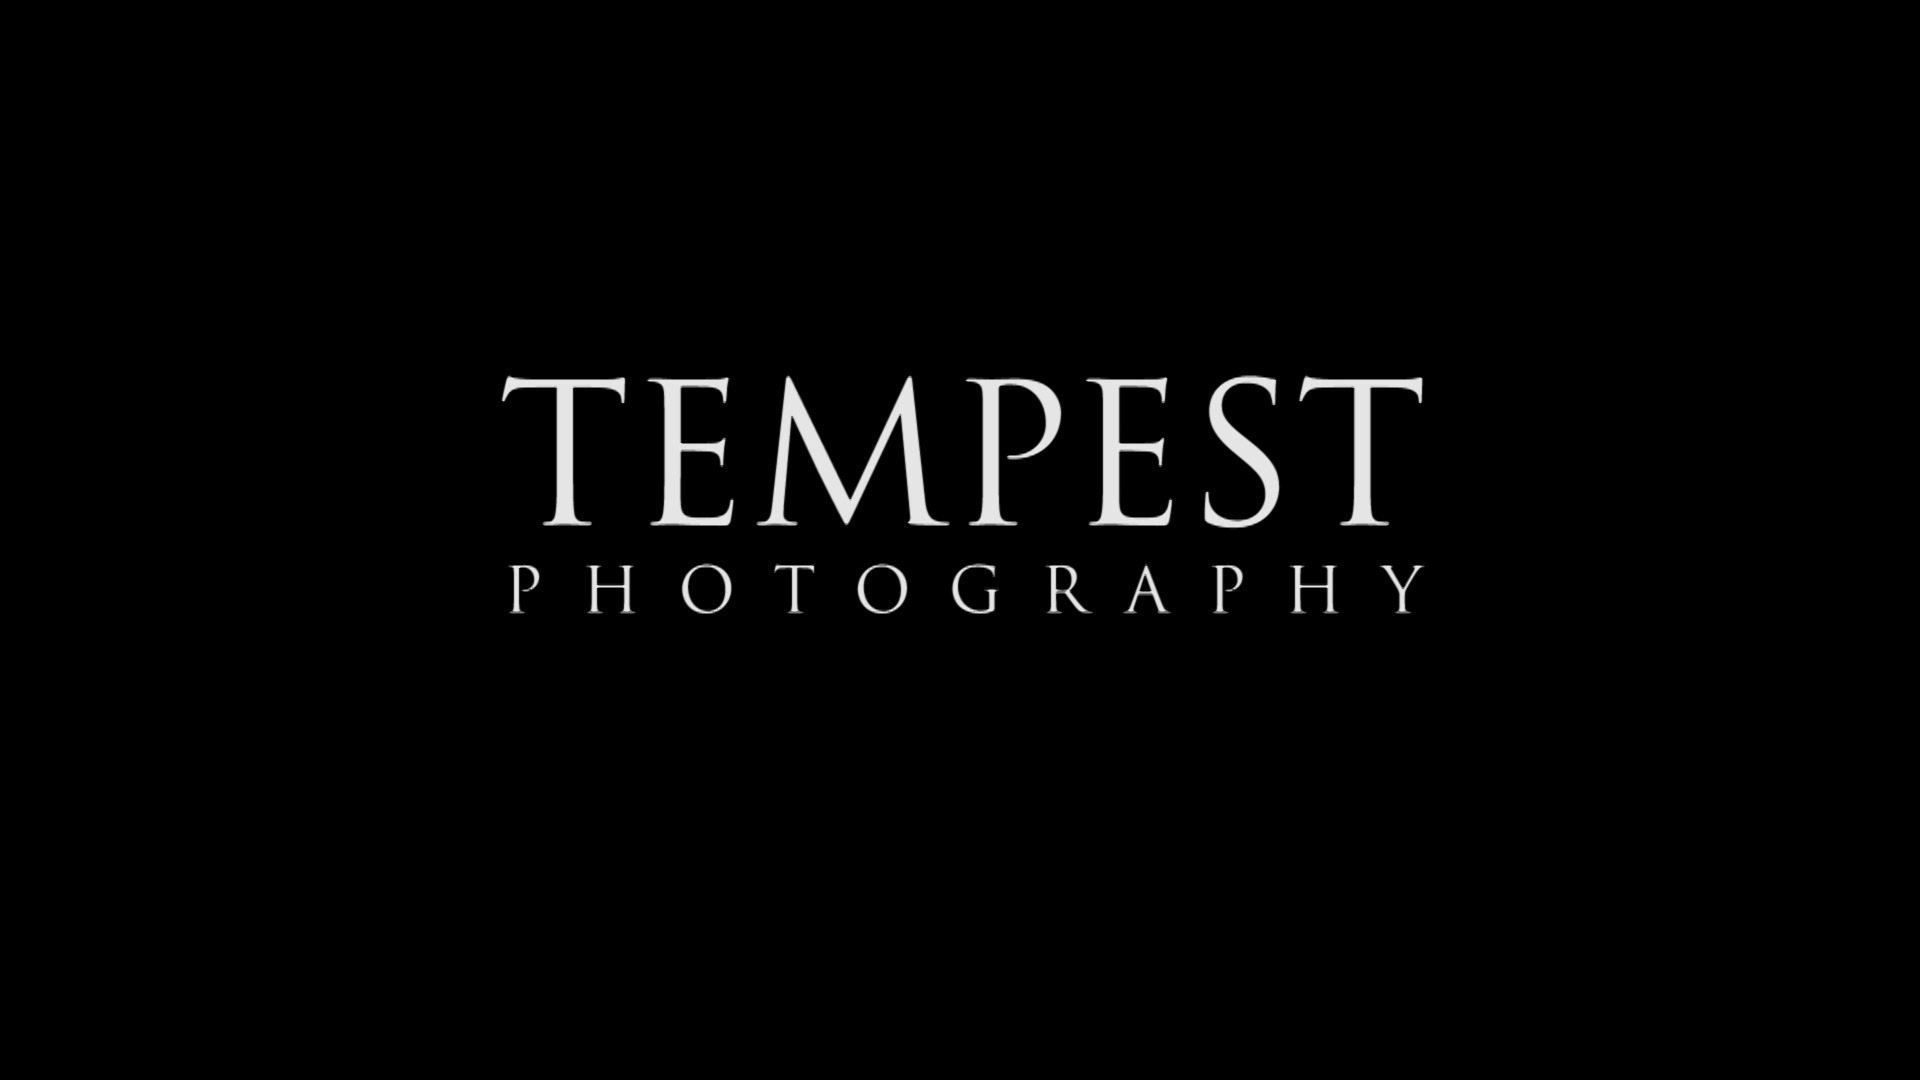 Tempest Photography